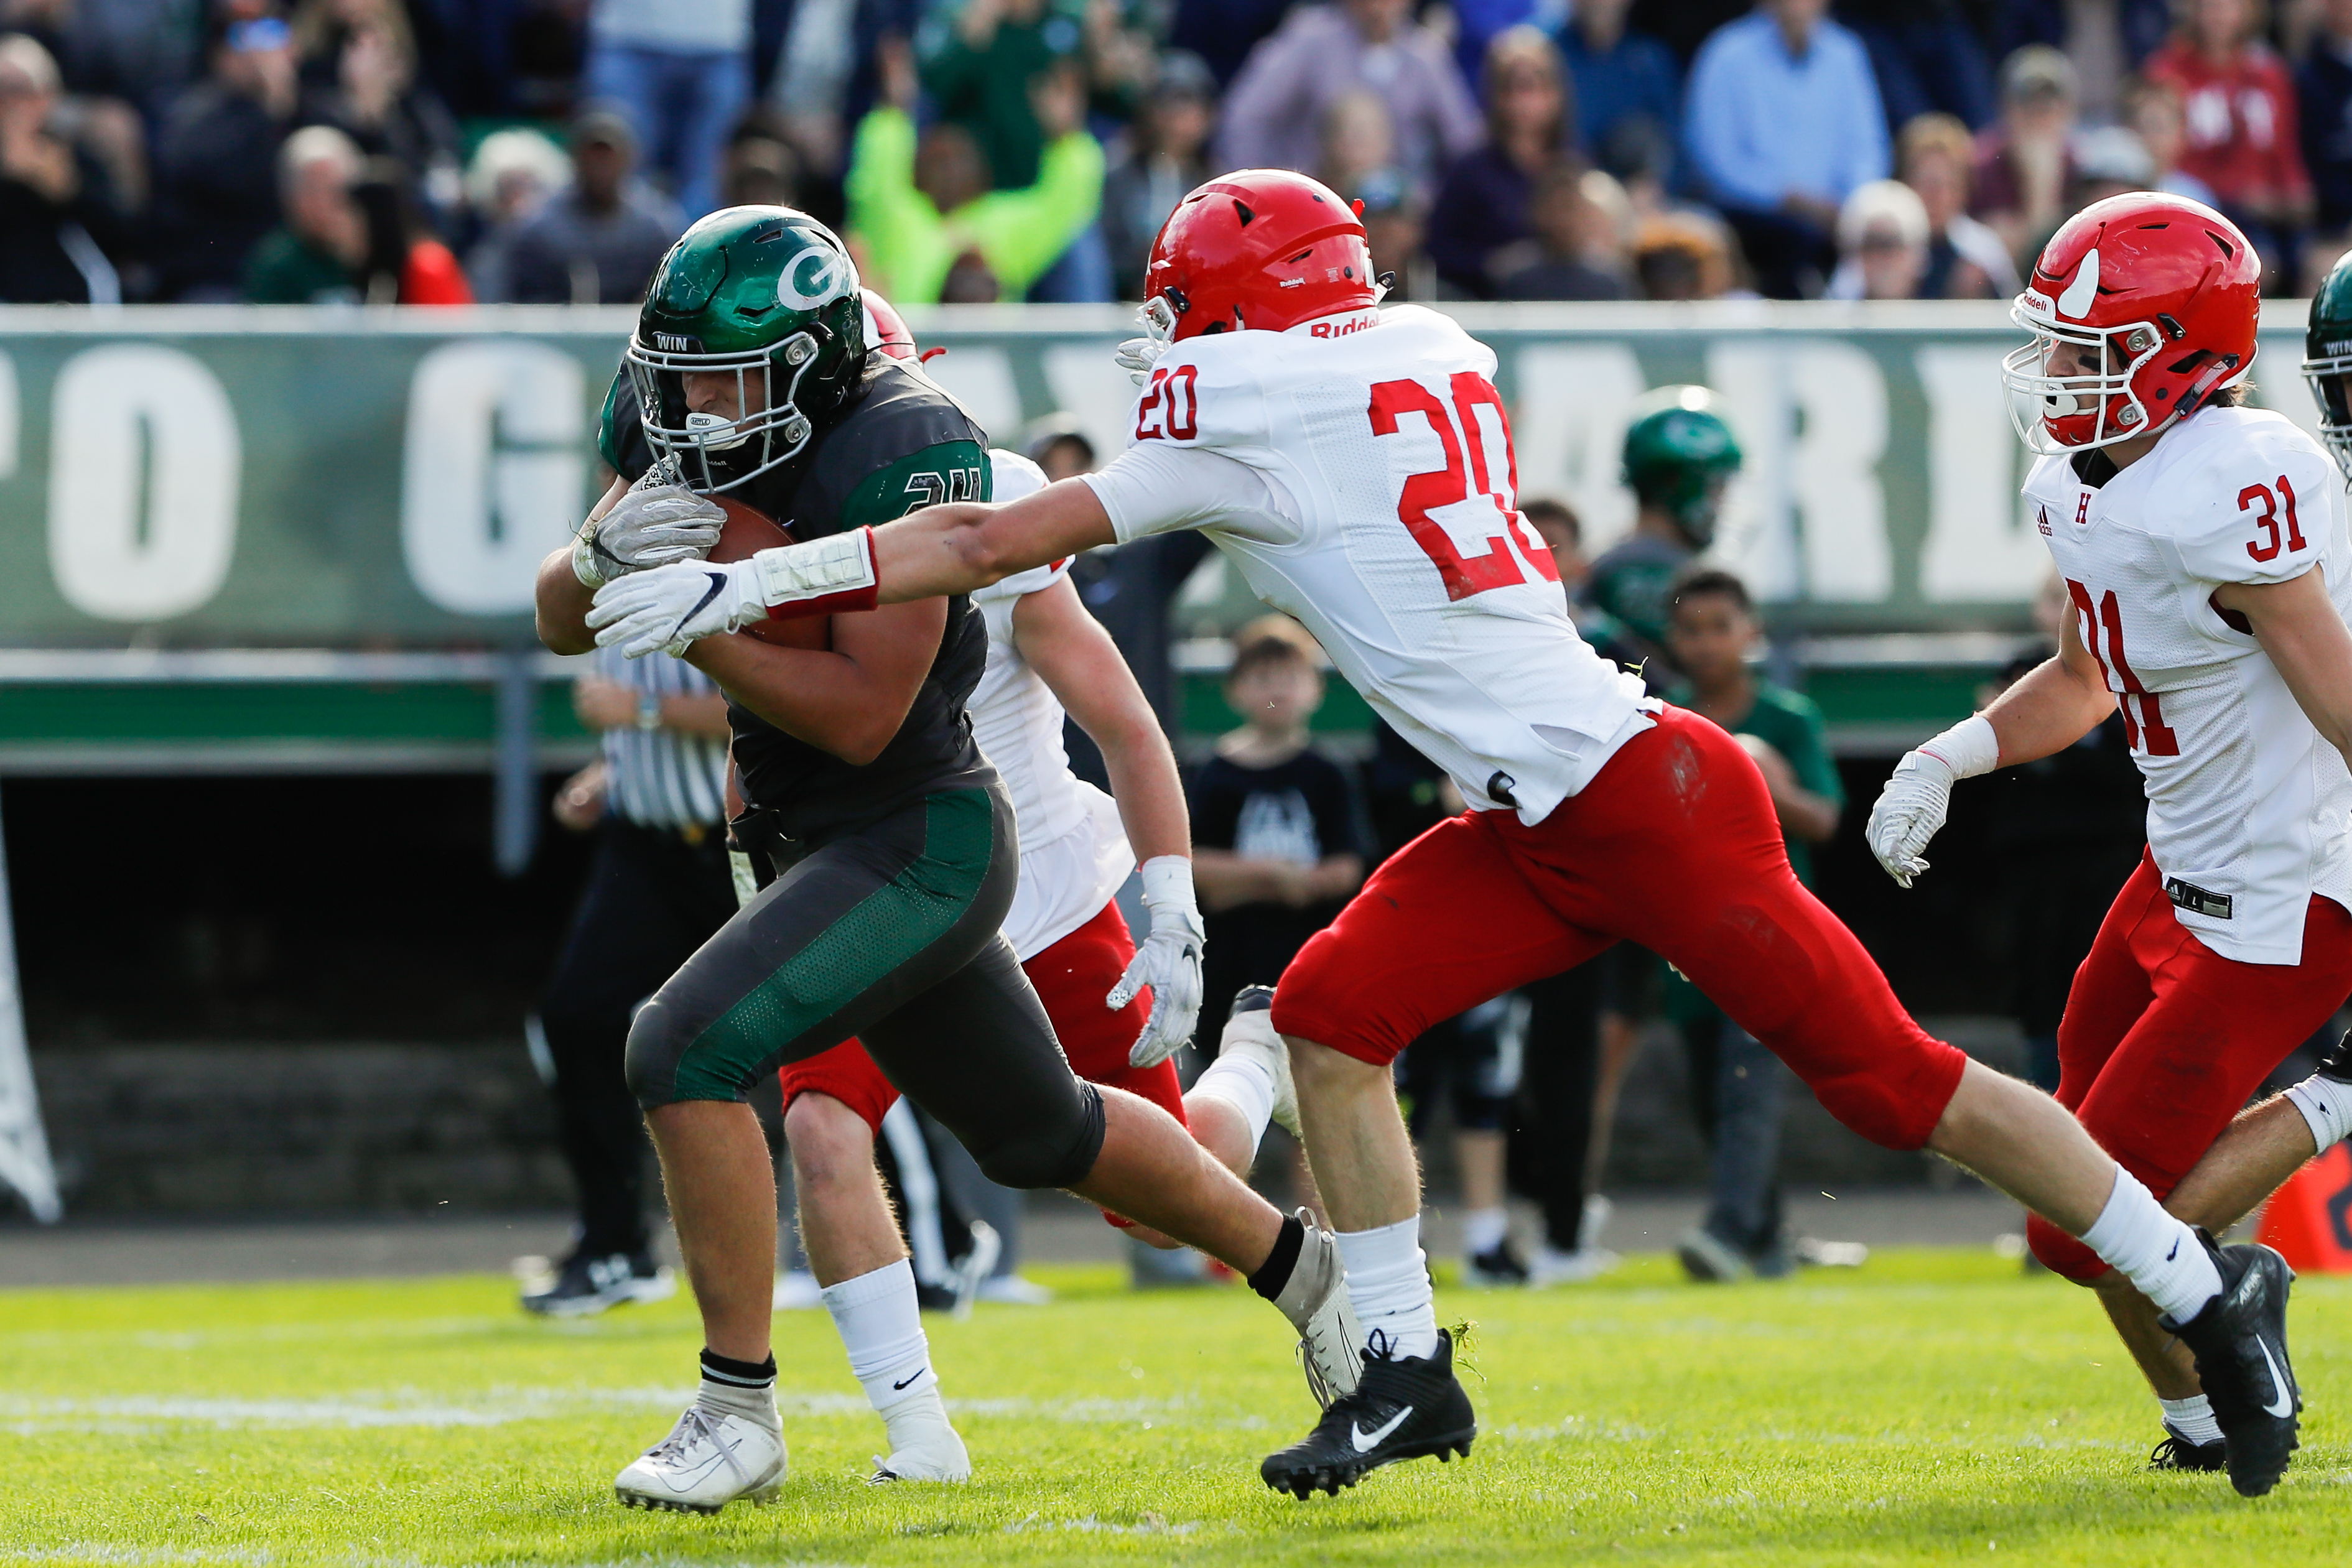 Glenbard West's Nic Seifert (24) runs against Hinsdale Central's defense.